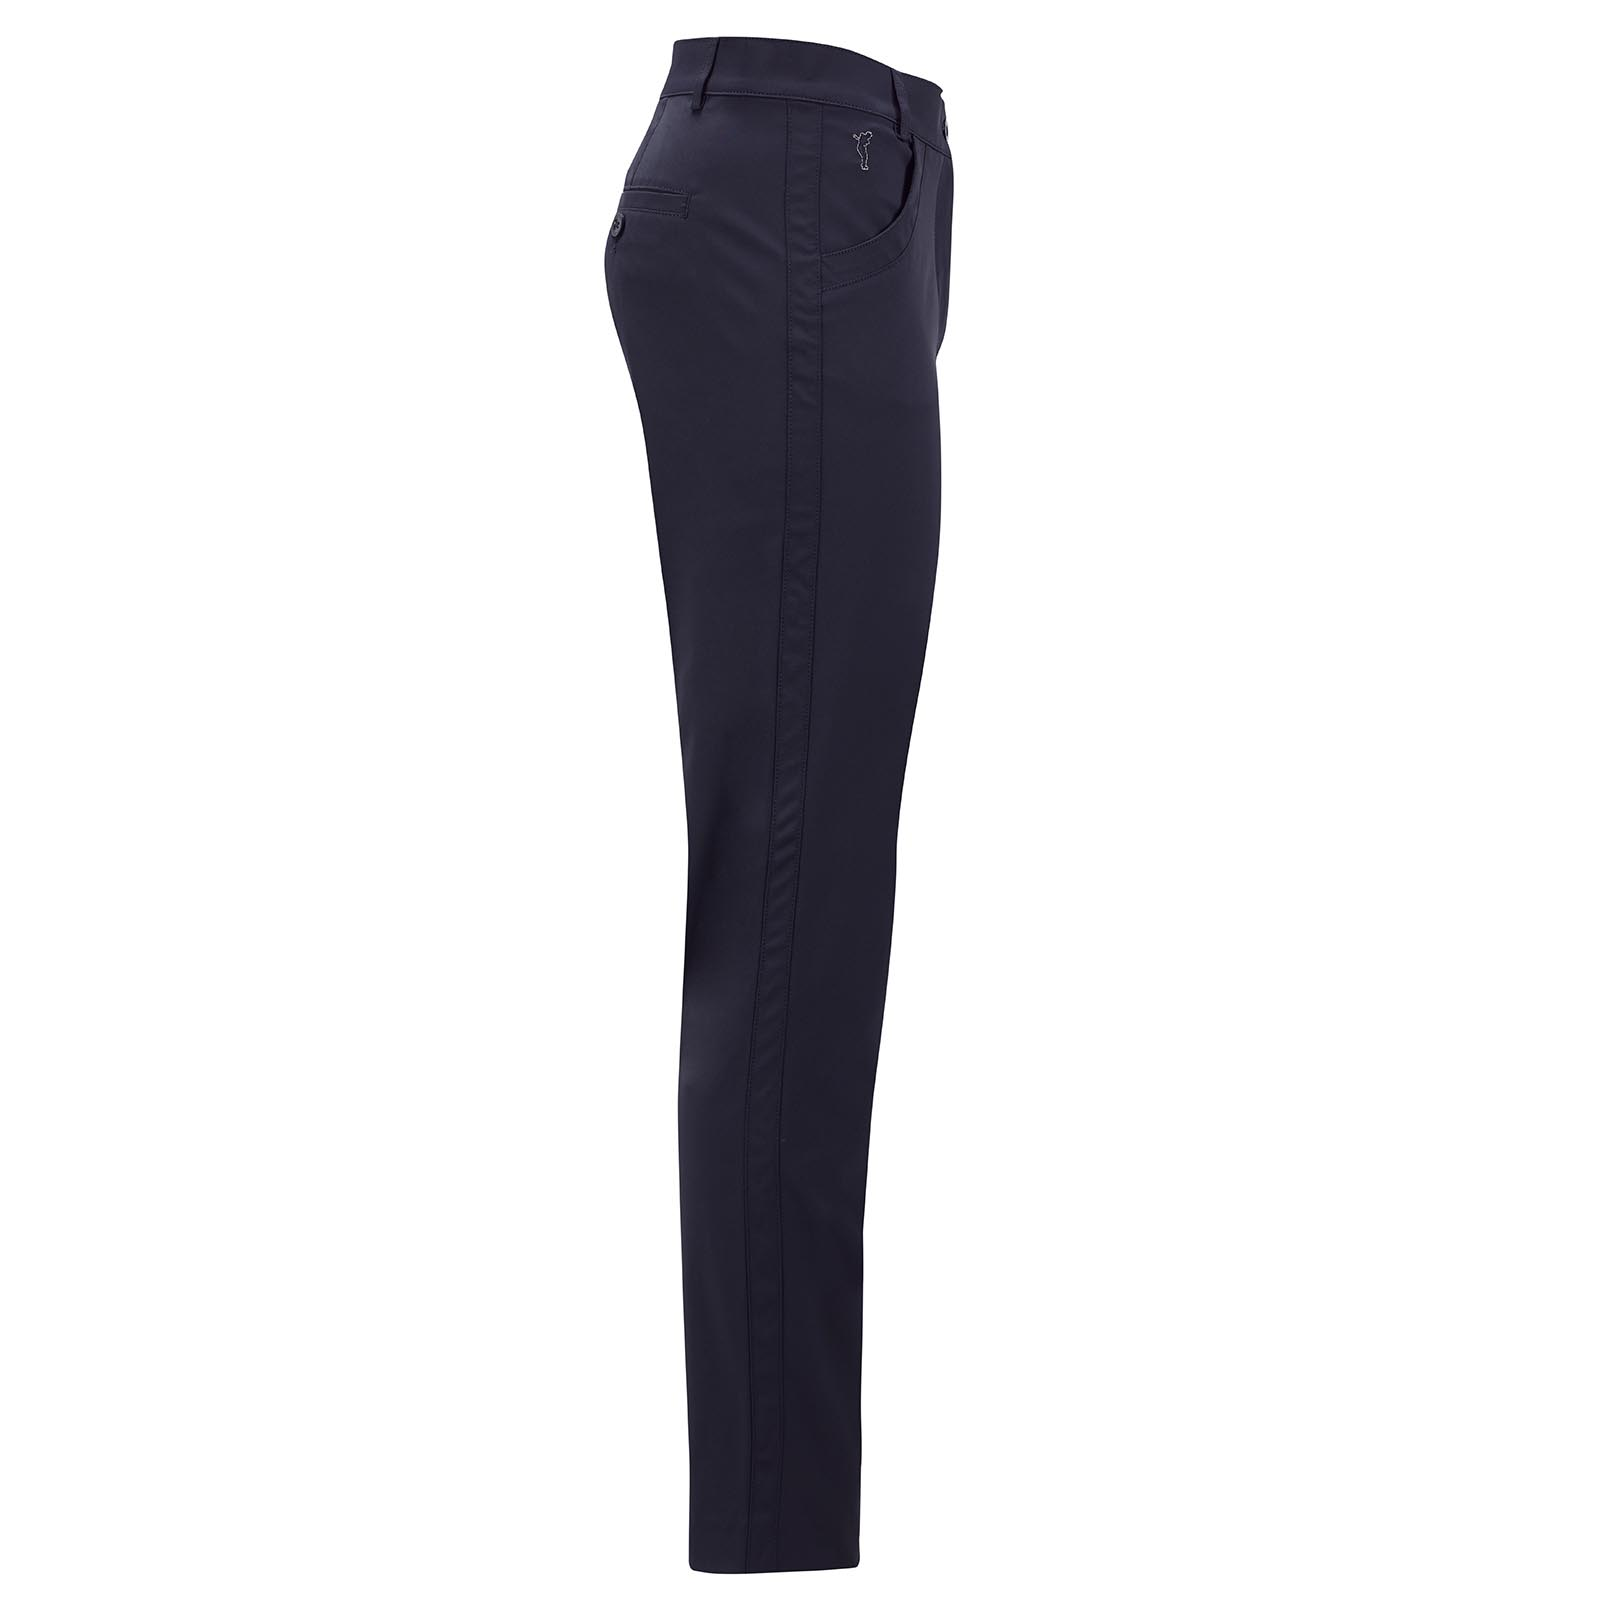 Damen 7/8-Funktions-Stretchhose